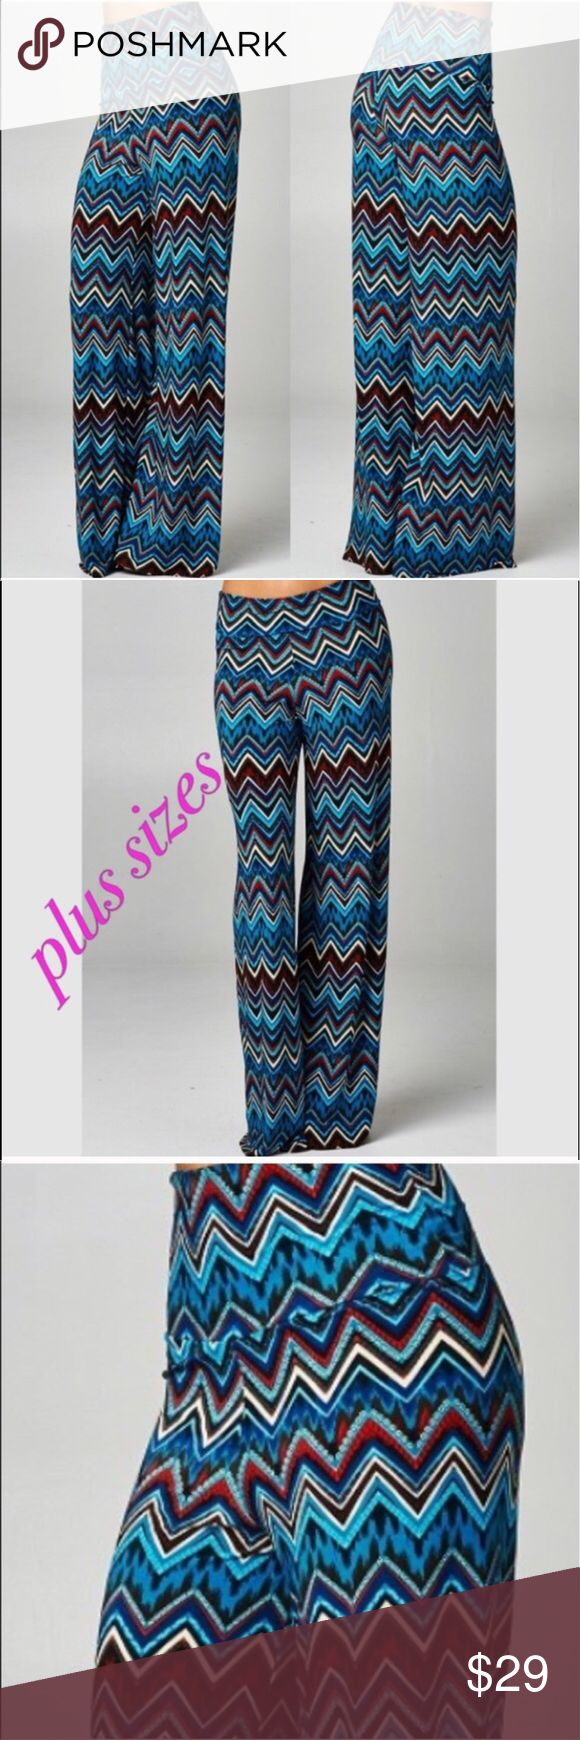 Plus size palazzo pants Casual and chic plus size wide leg pants - chevron print with foldable waist - rayon/spandex - price is firm. Boutique Pants Wide Leg